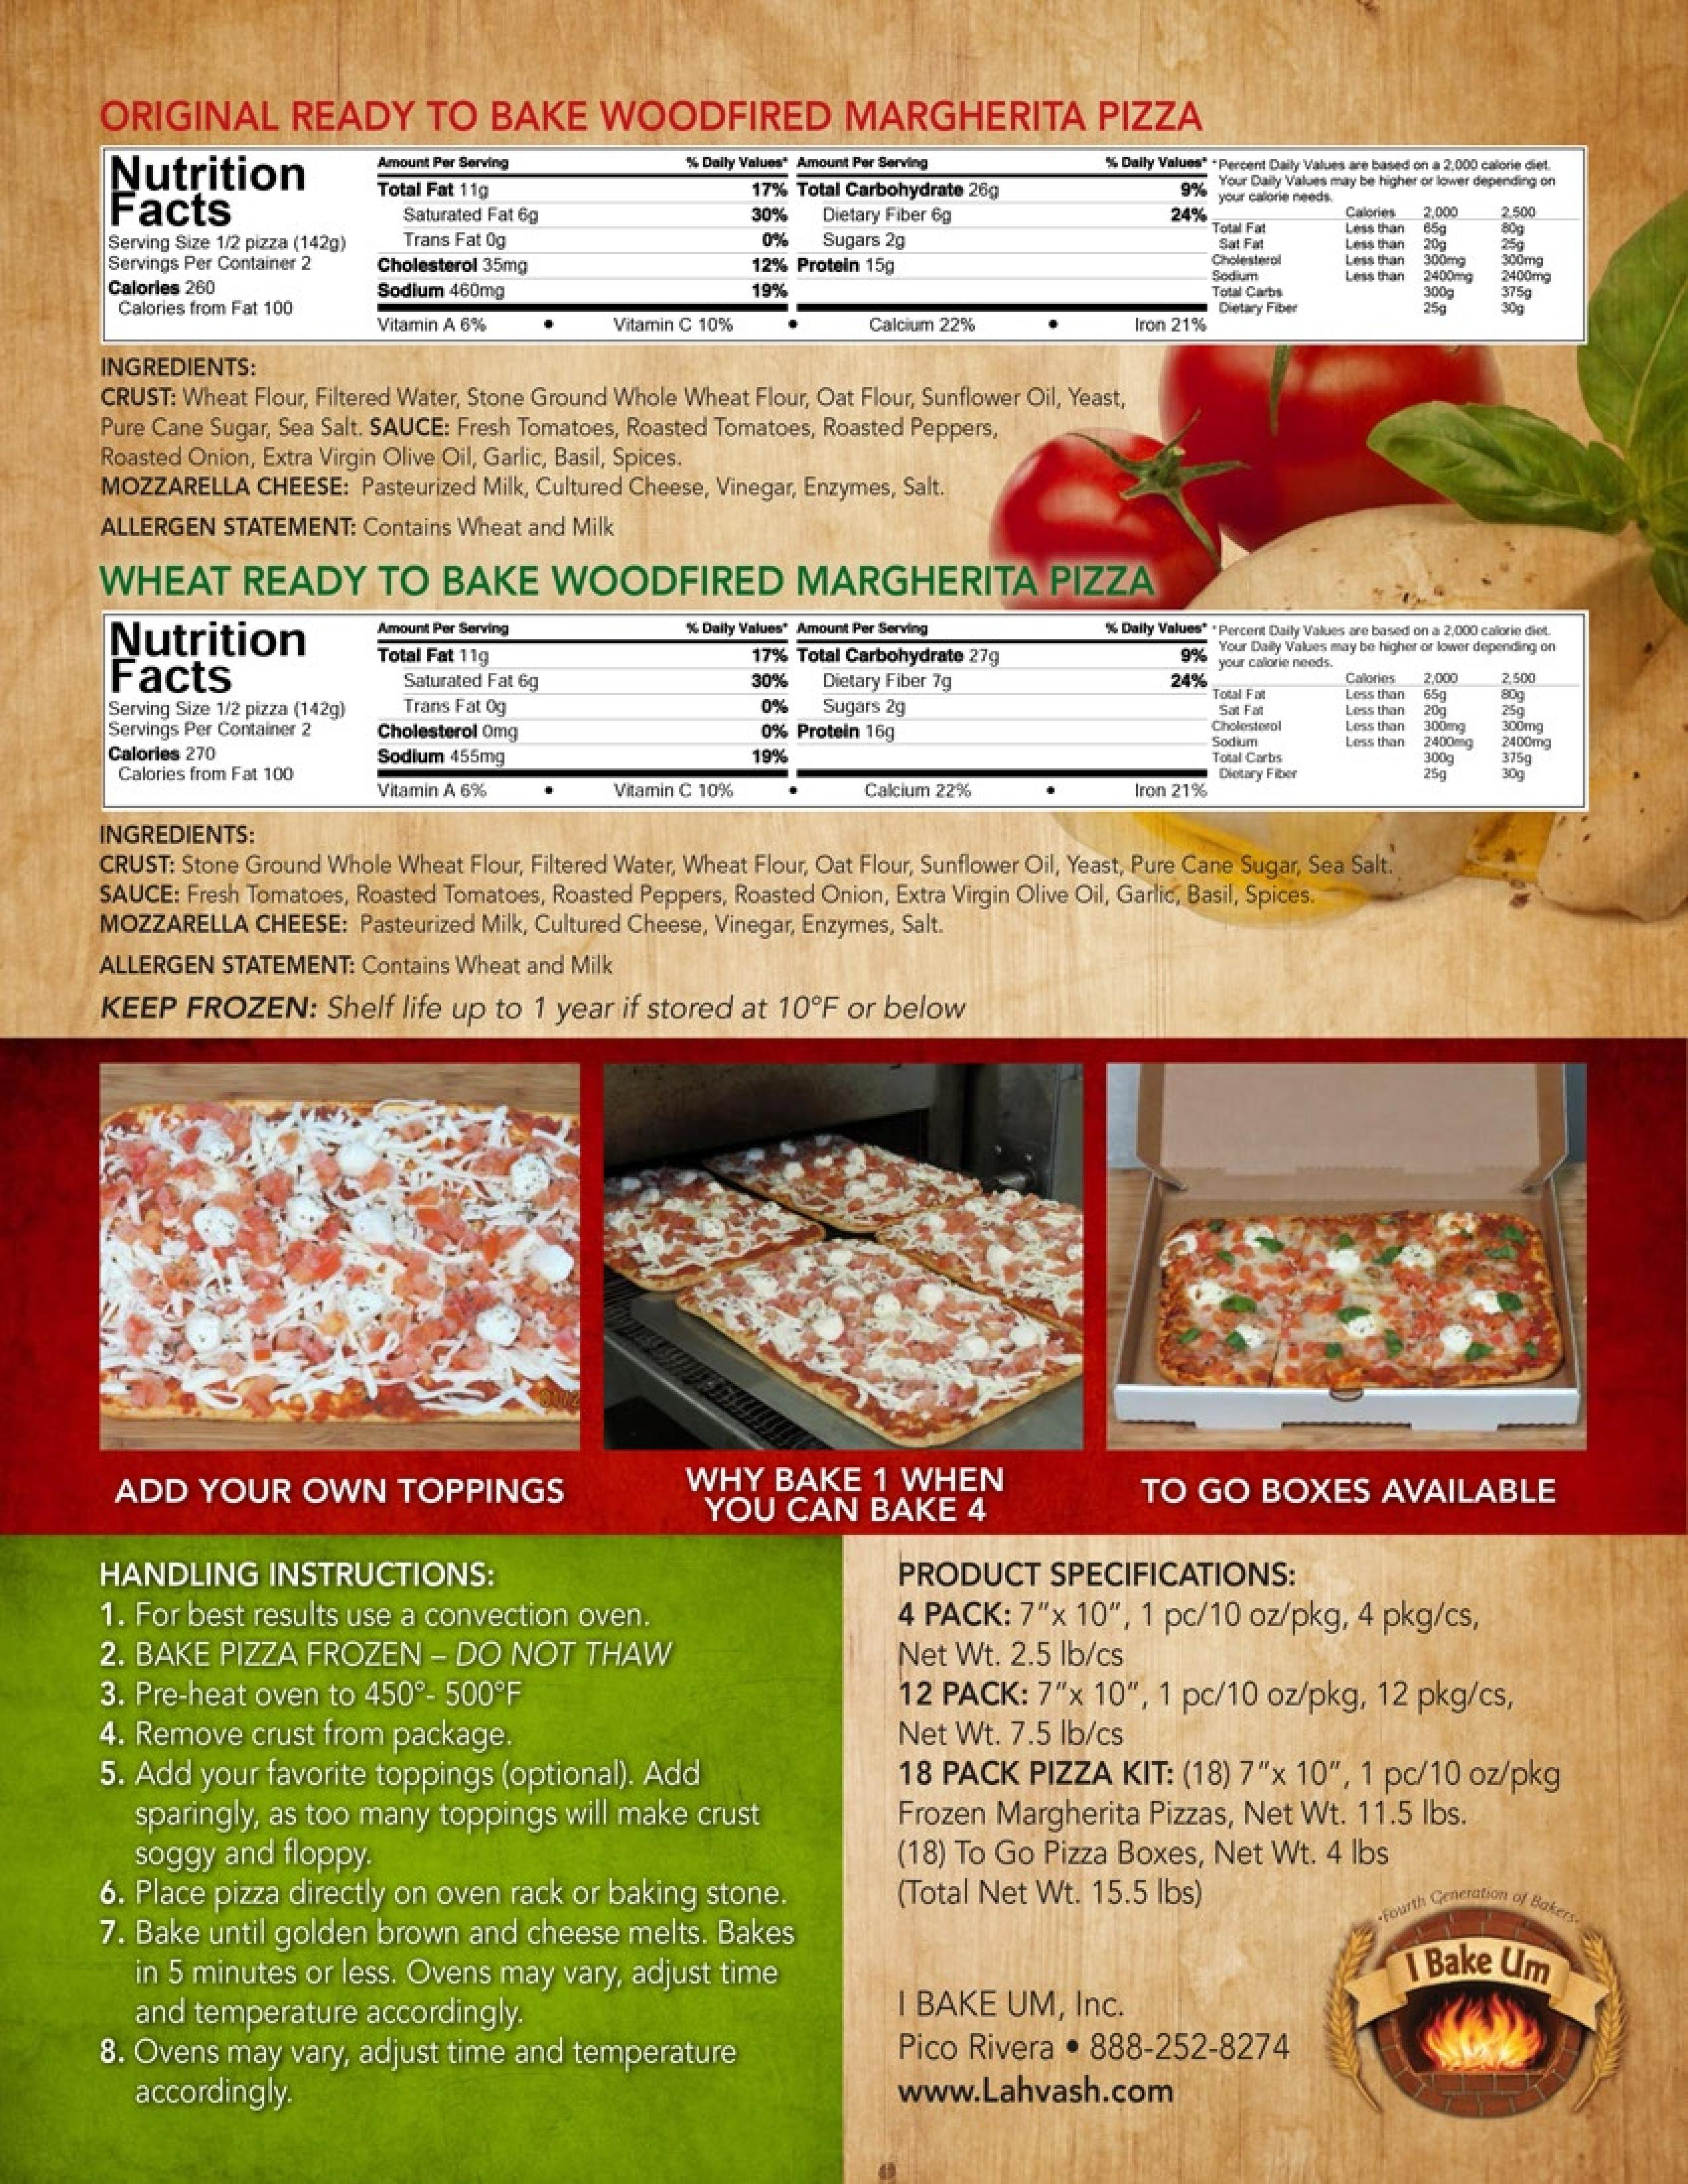 retail-margherita-pizza-back